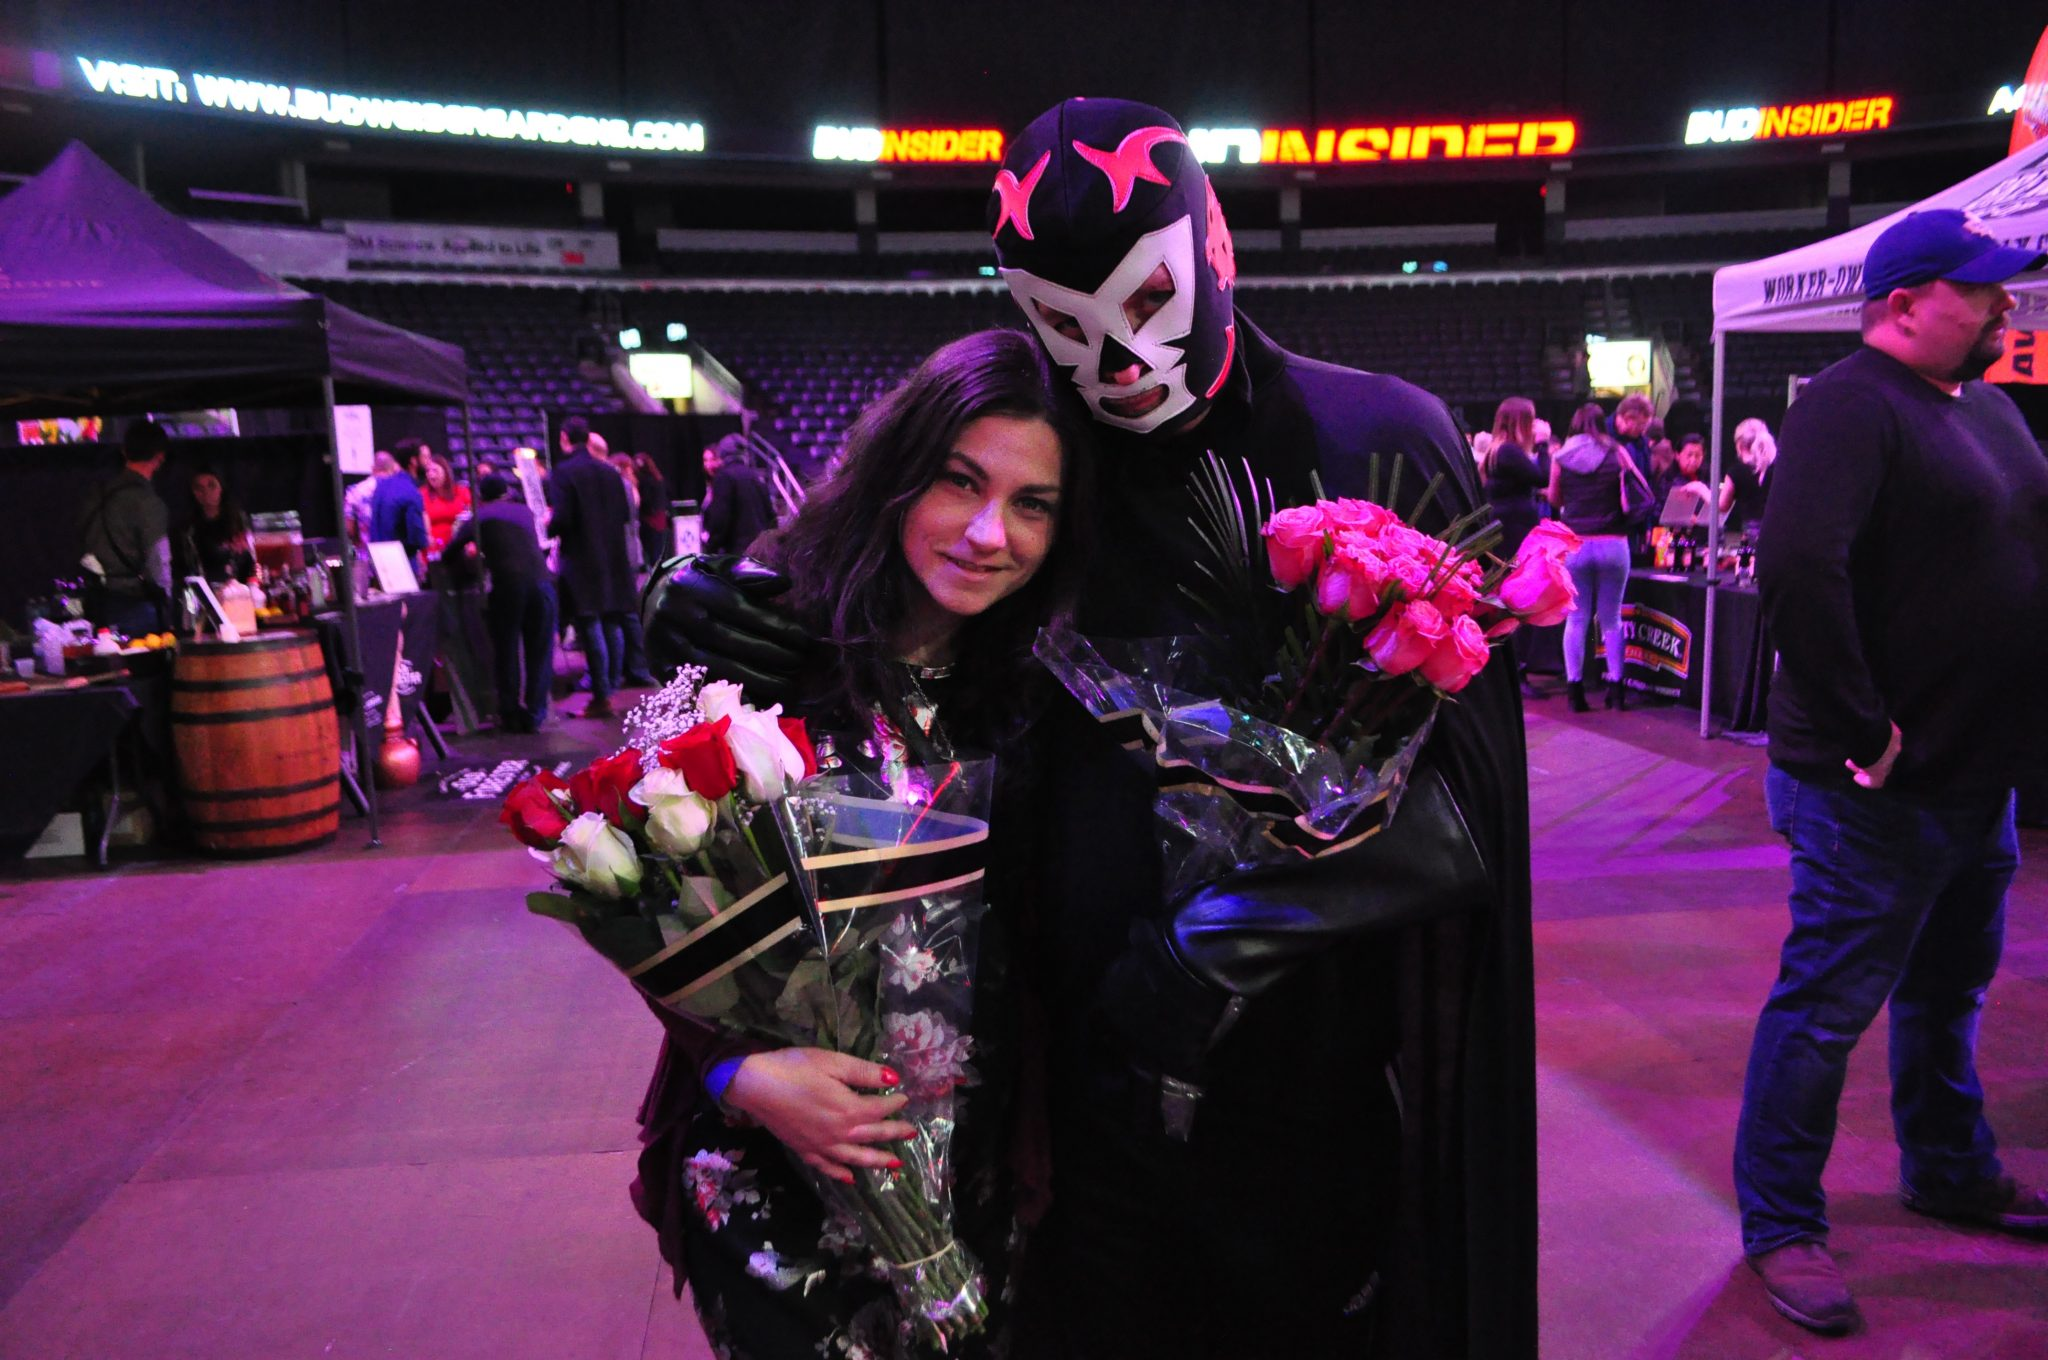 No show is complete without the man in the mask giving out roses.